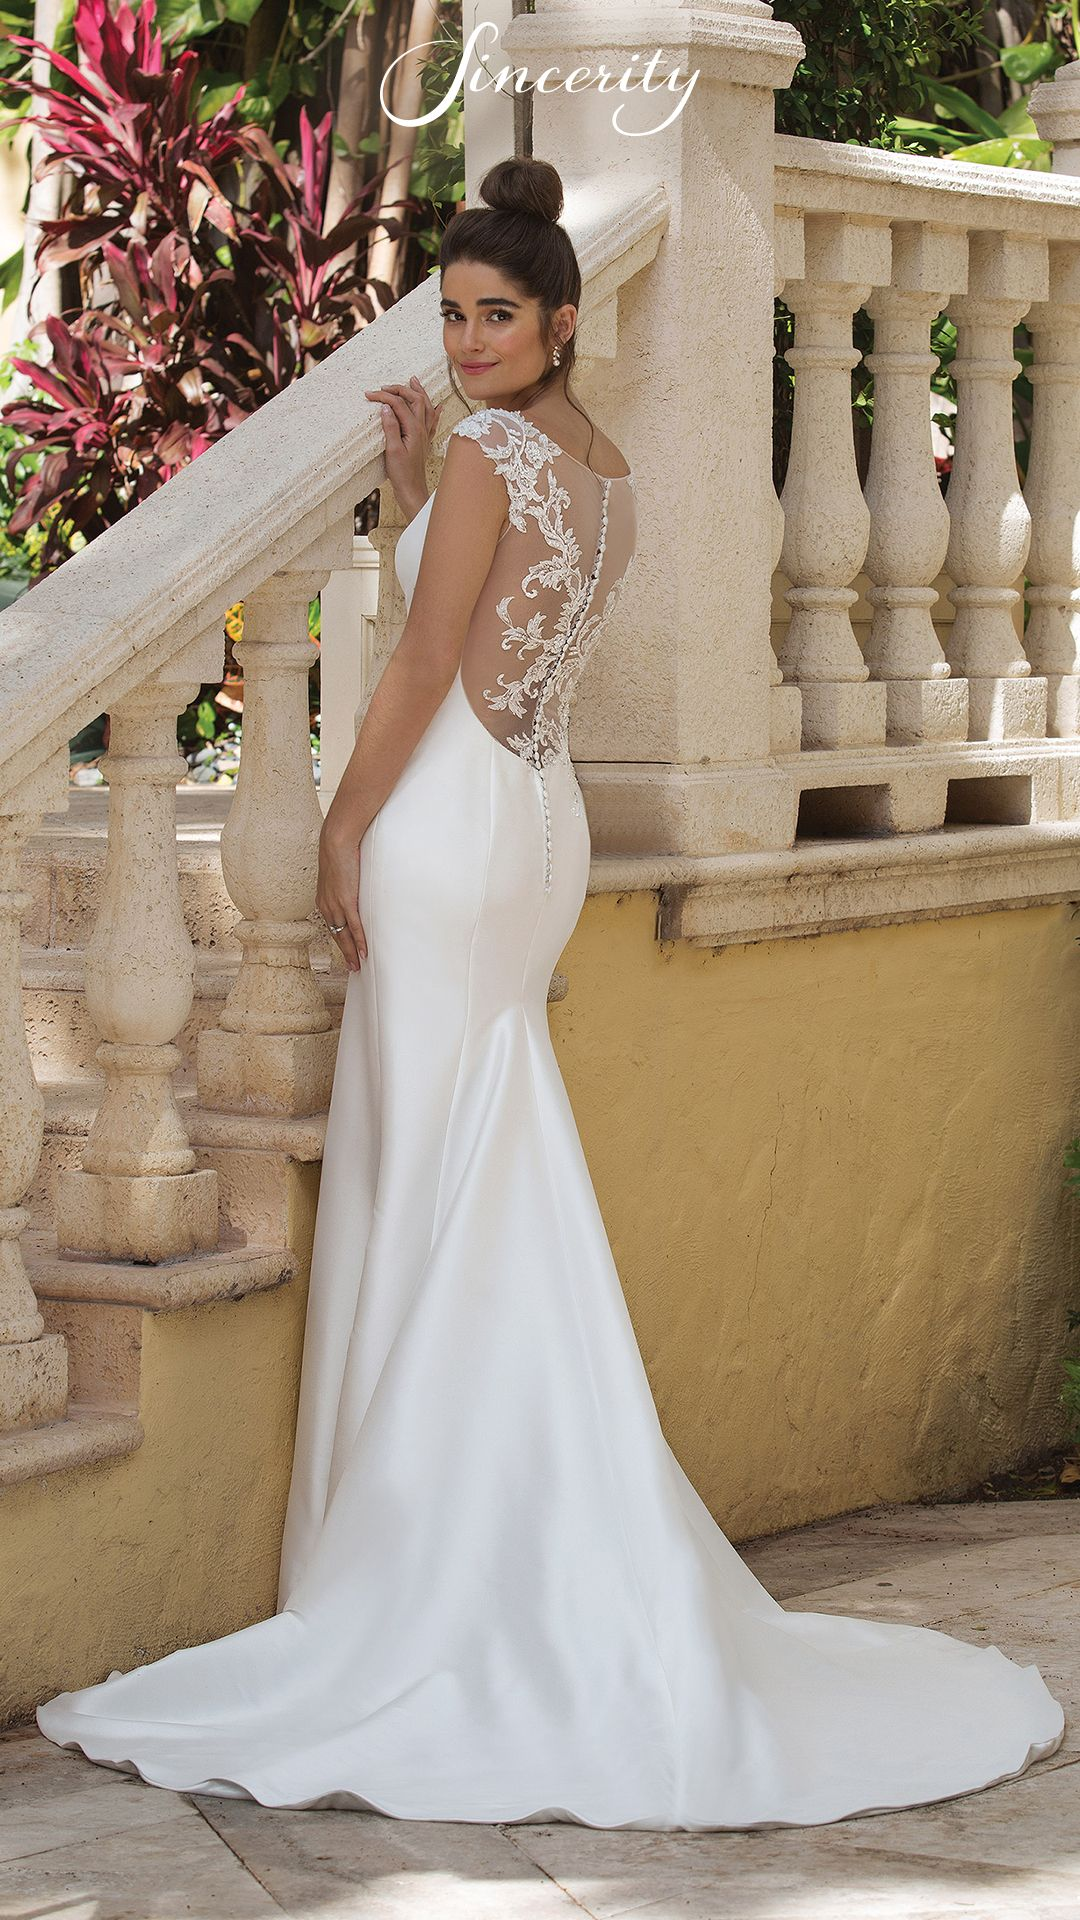 Style 44081 Stand Out On Your Big Day In This Mikado Fit And Flare Gown This Dress Sincerity Bridal Wedding Dresses Sincerity Bridal Sincerity Wedding Dress